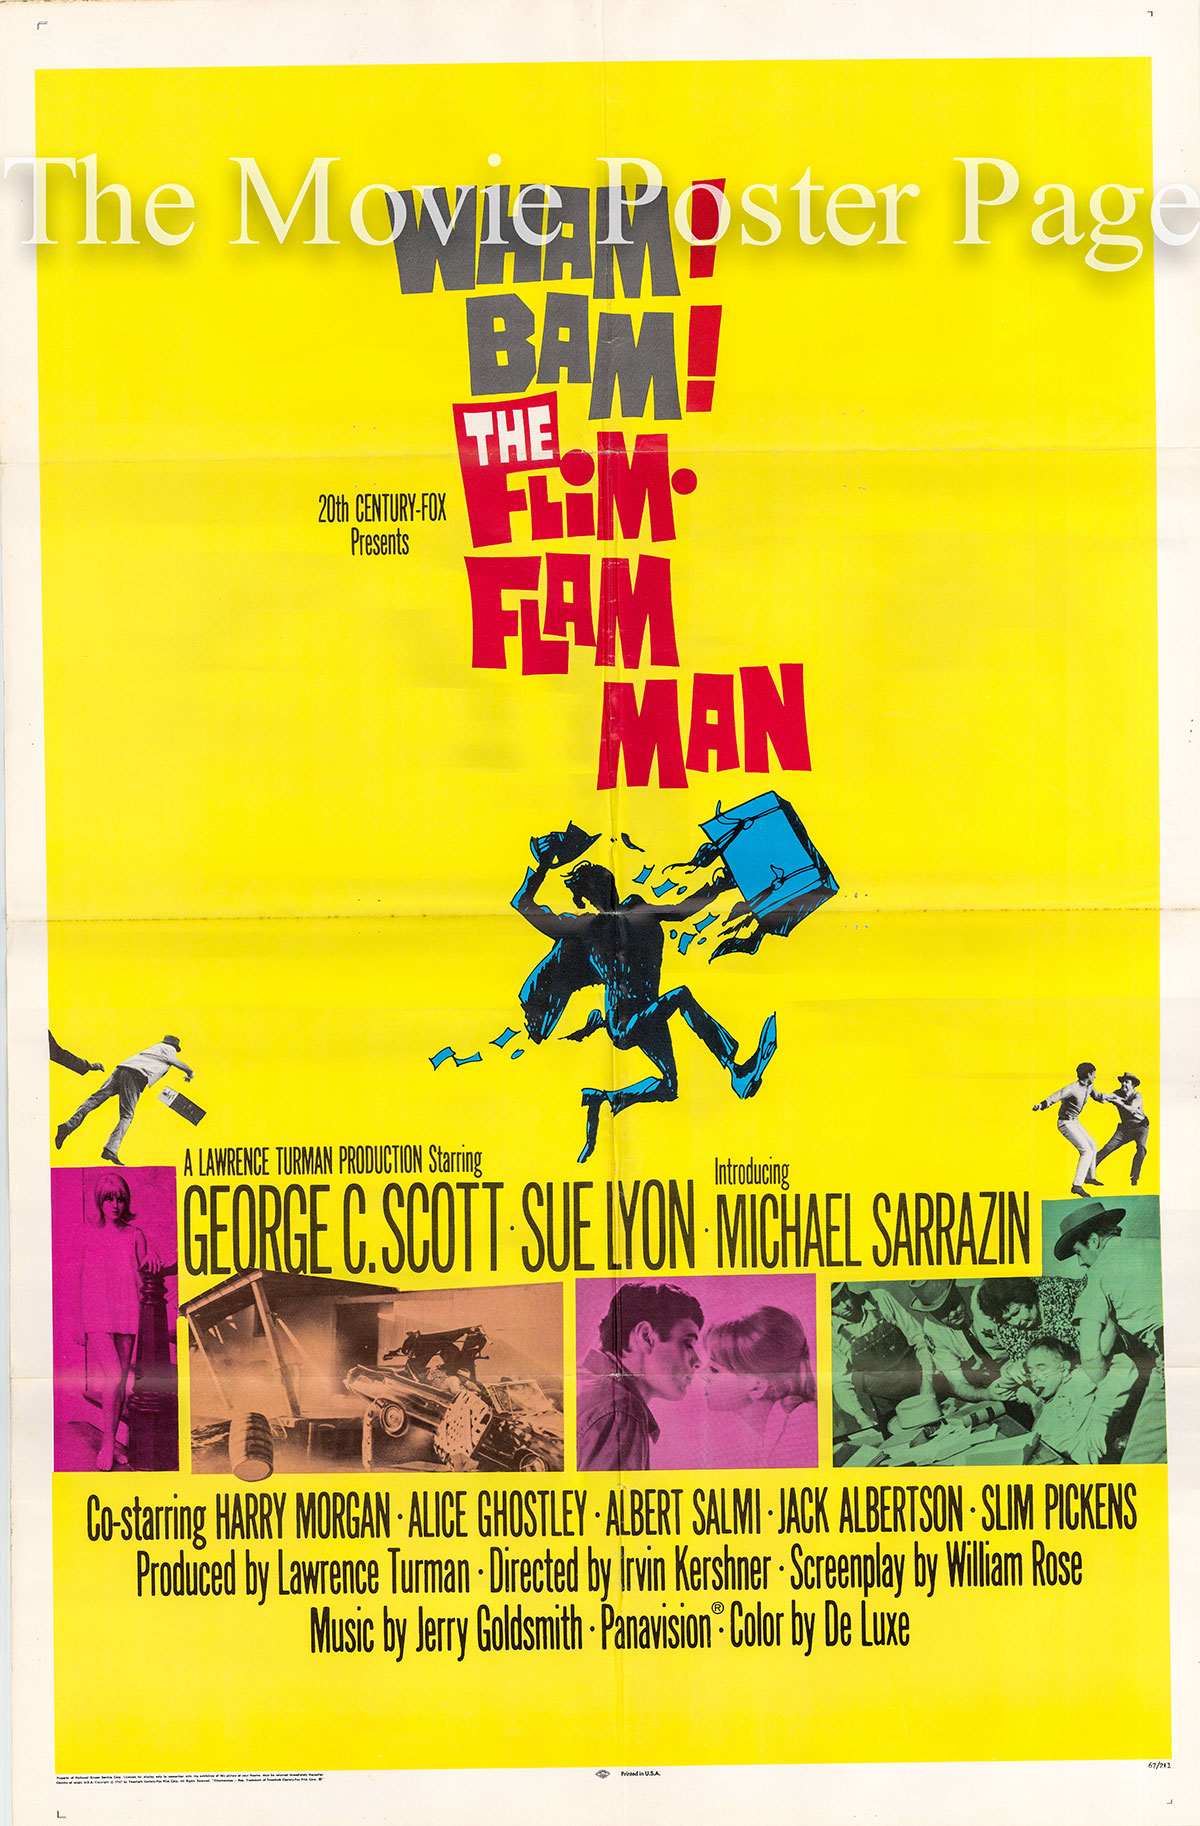 Pictured is a US promotional one-sheet poster for the 1967 Irvin Kershner film The Flim Flam Man starring George C. Scott as Mordecai Jones.